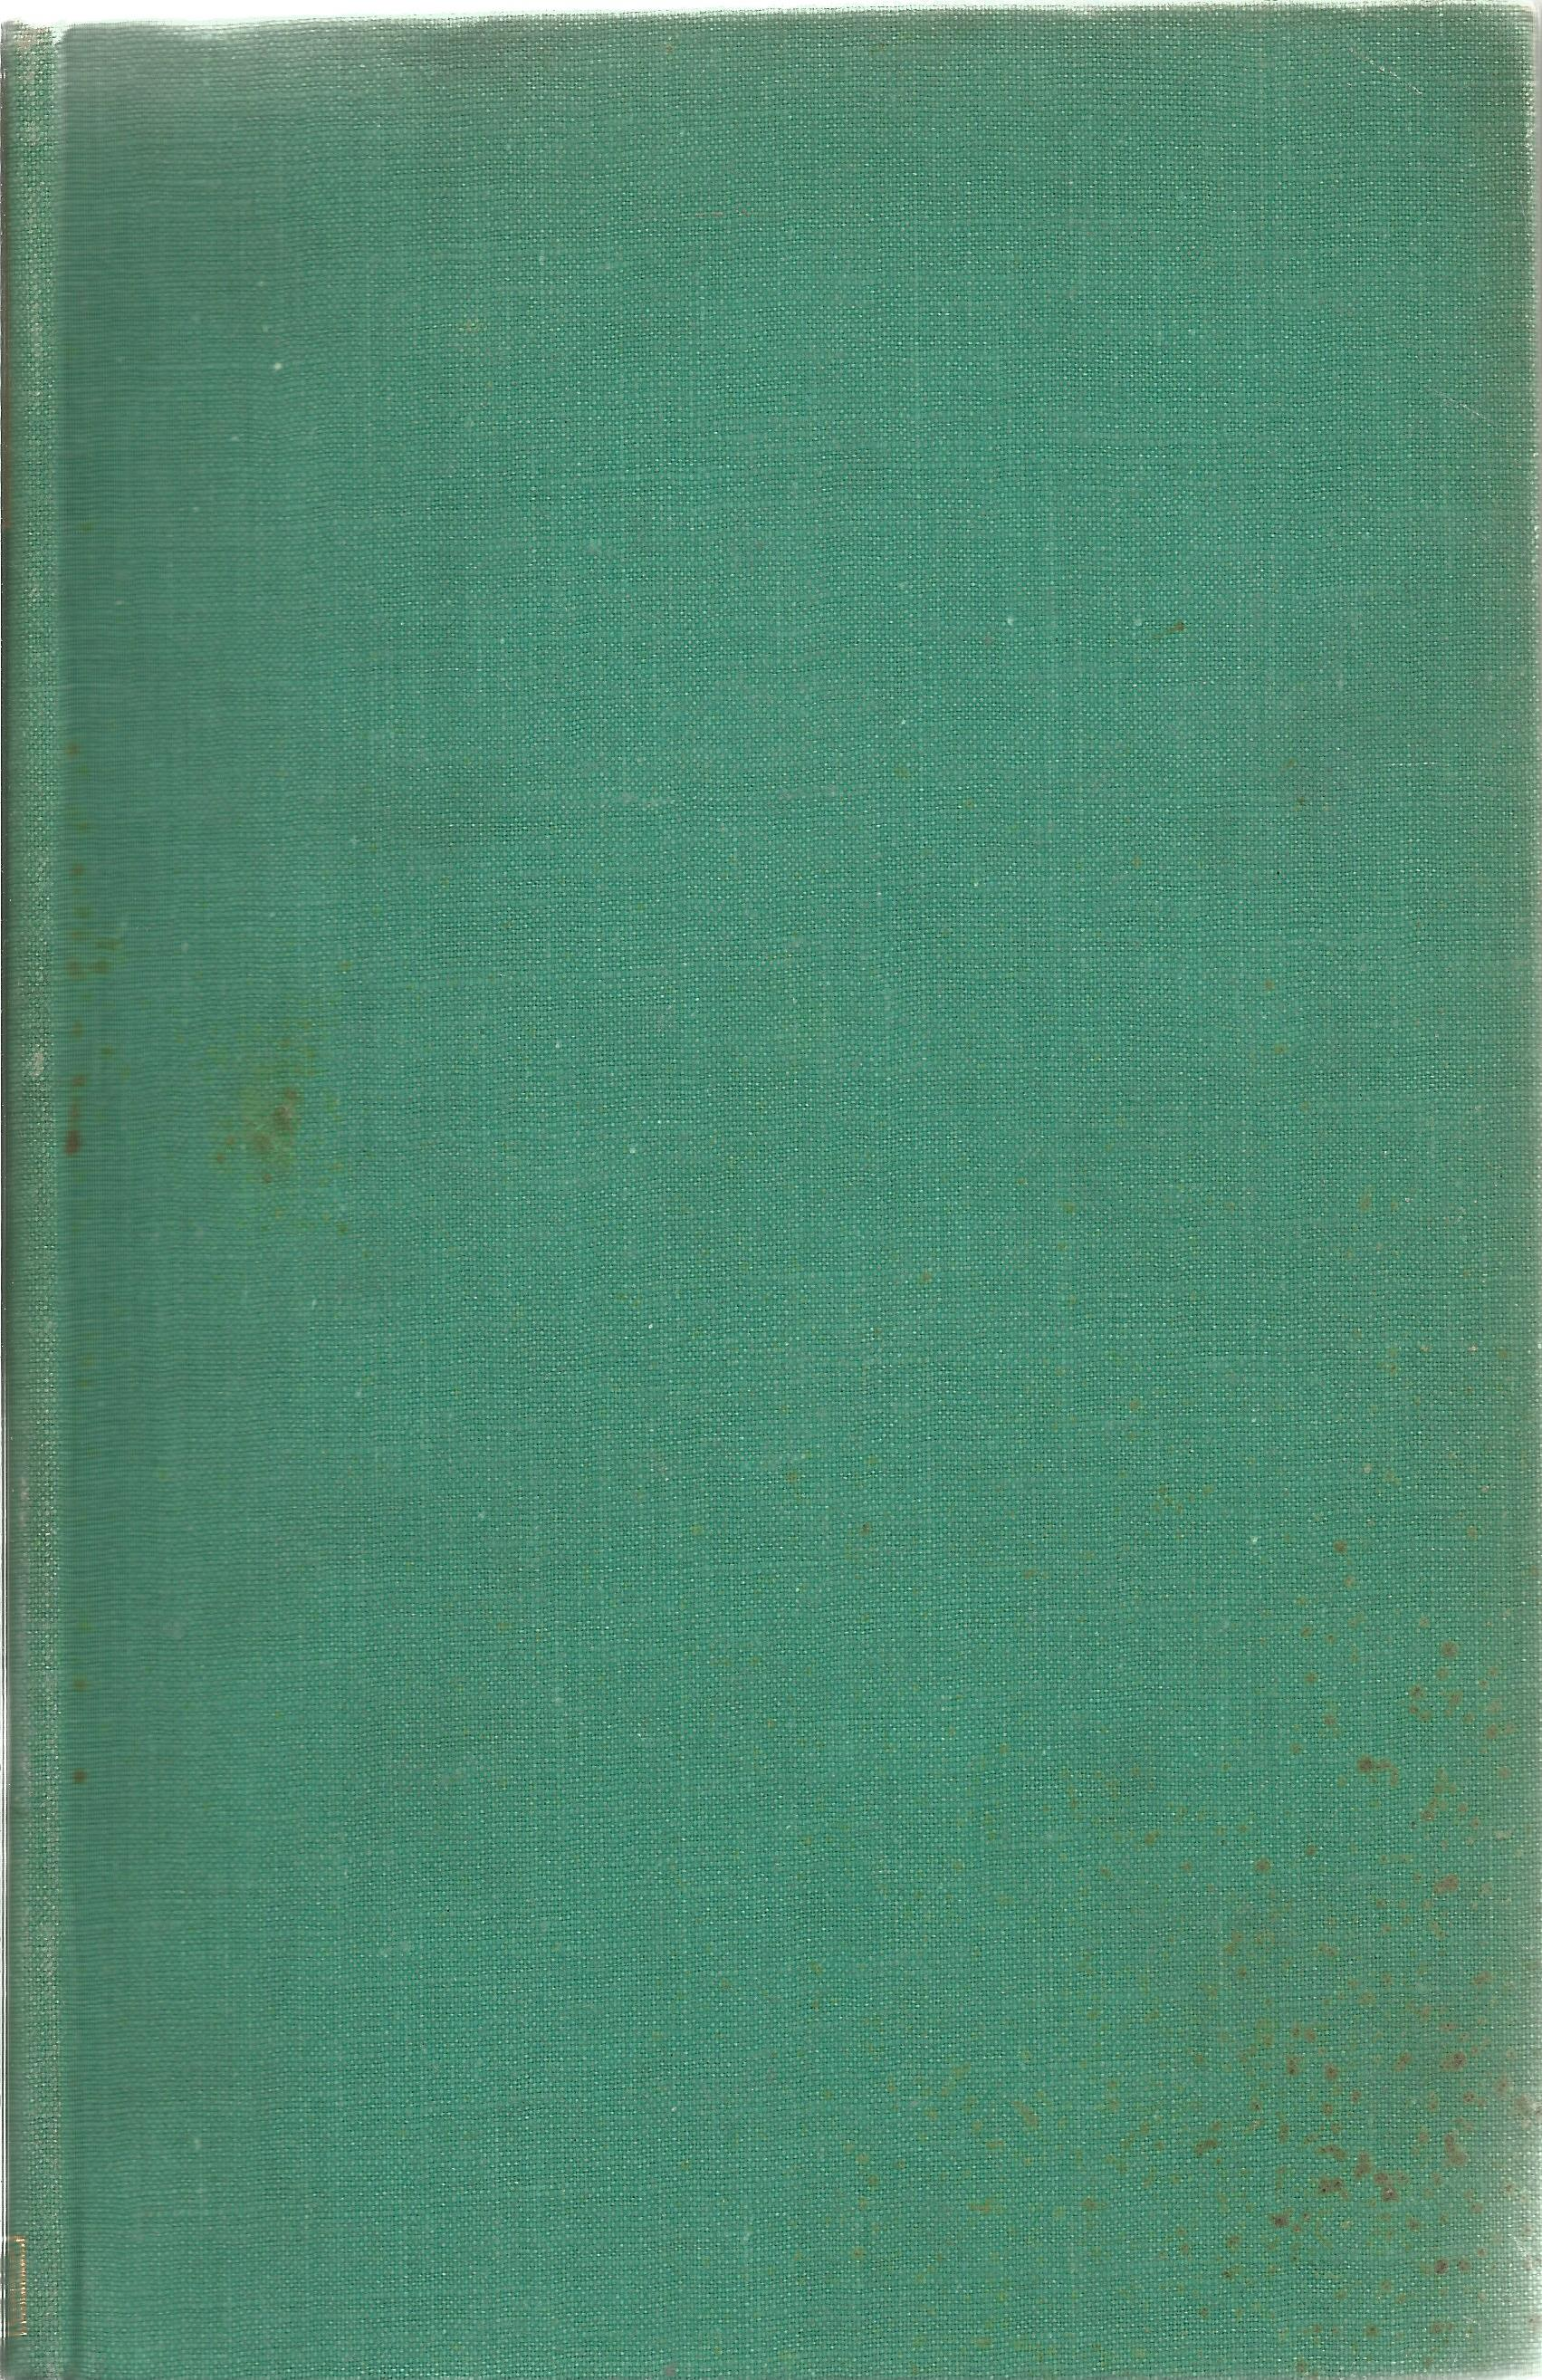 Charles Morgan Hardback Book The Flashing Stream A Play 1938 signed by the Author on the First